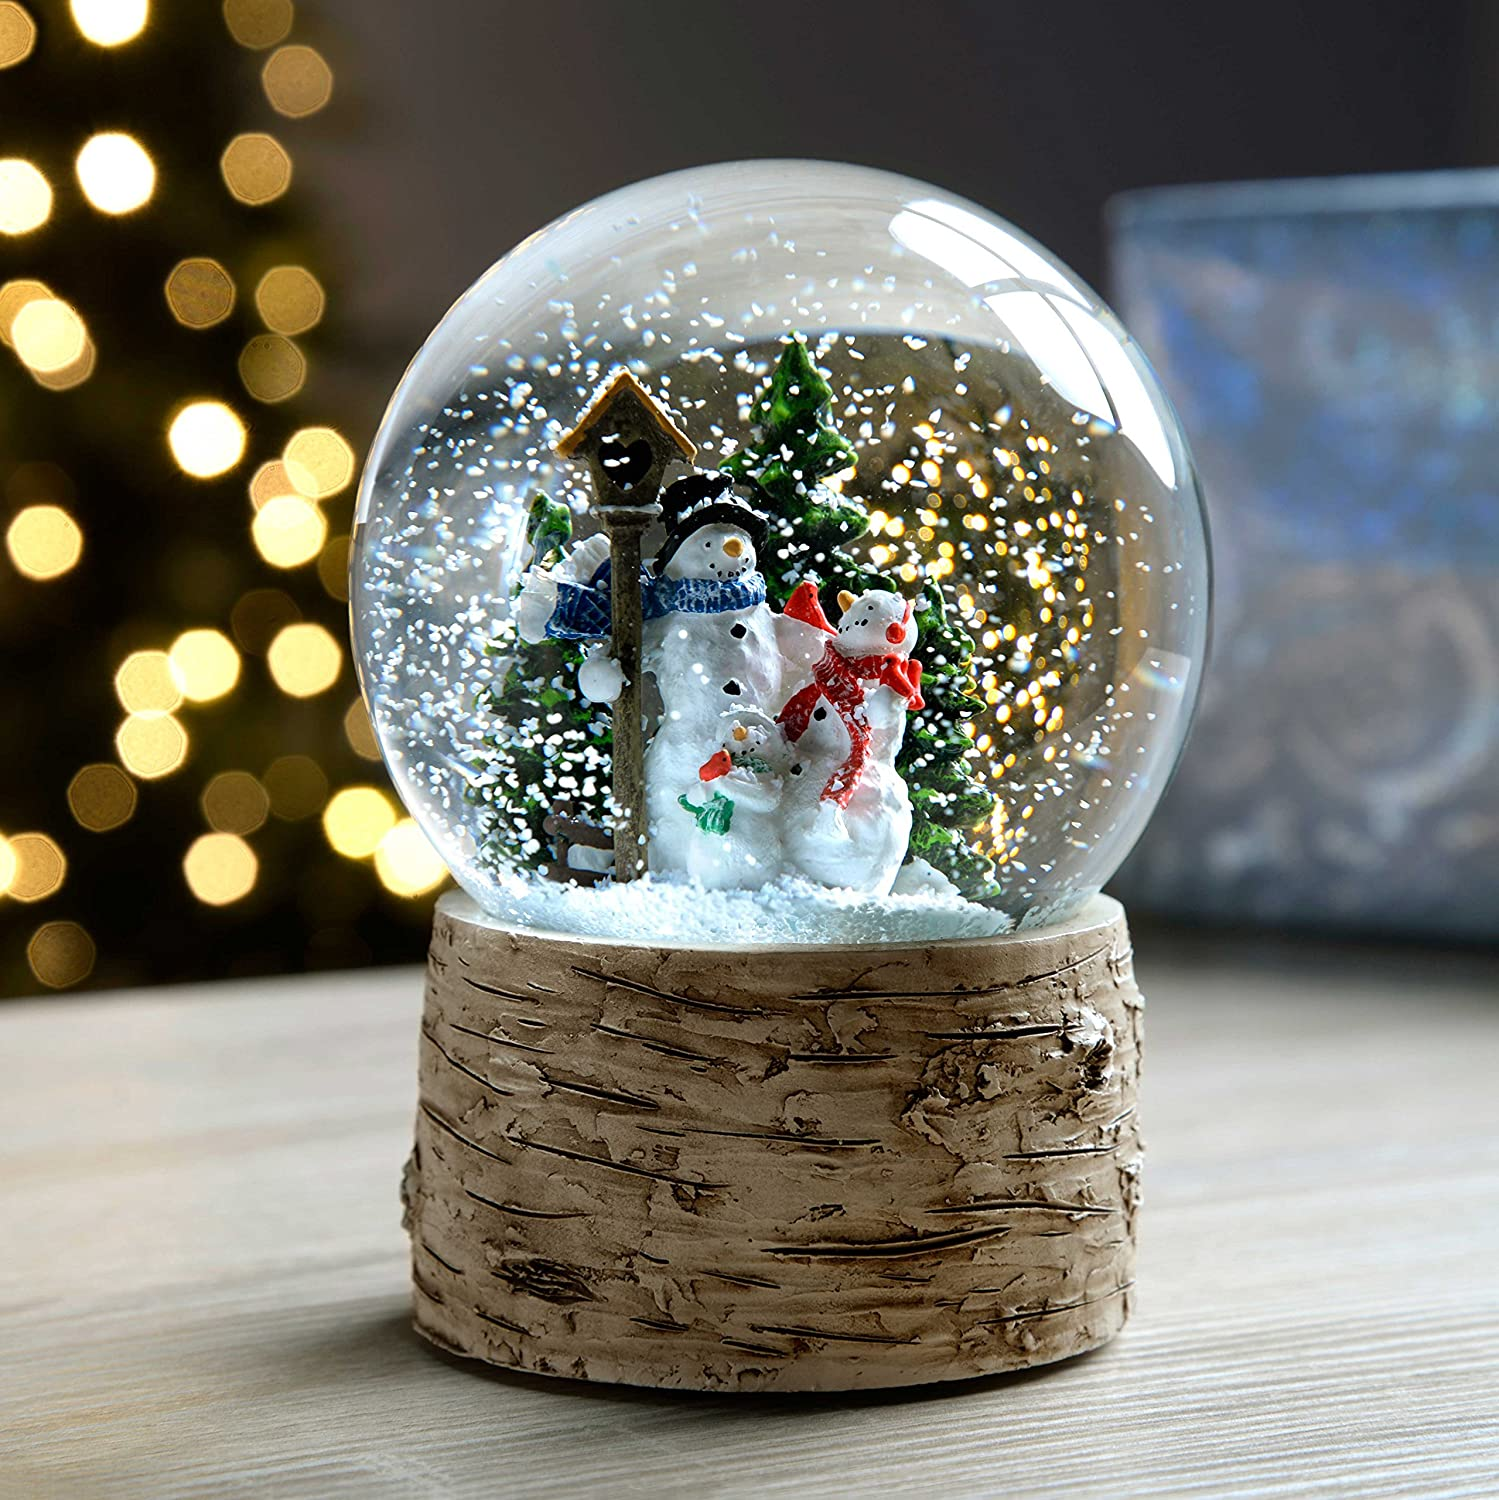 felt decorations family ornaments decor cheap balls of social glass snowman heavy best personlized com top wooden snowmen for personalized tree four christmas ornament